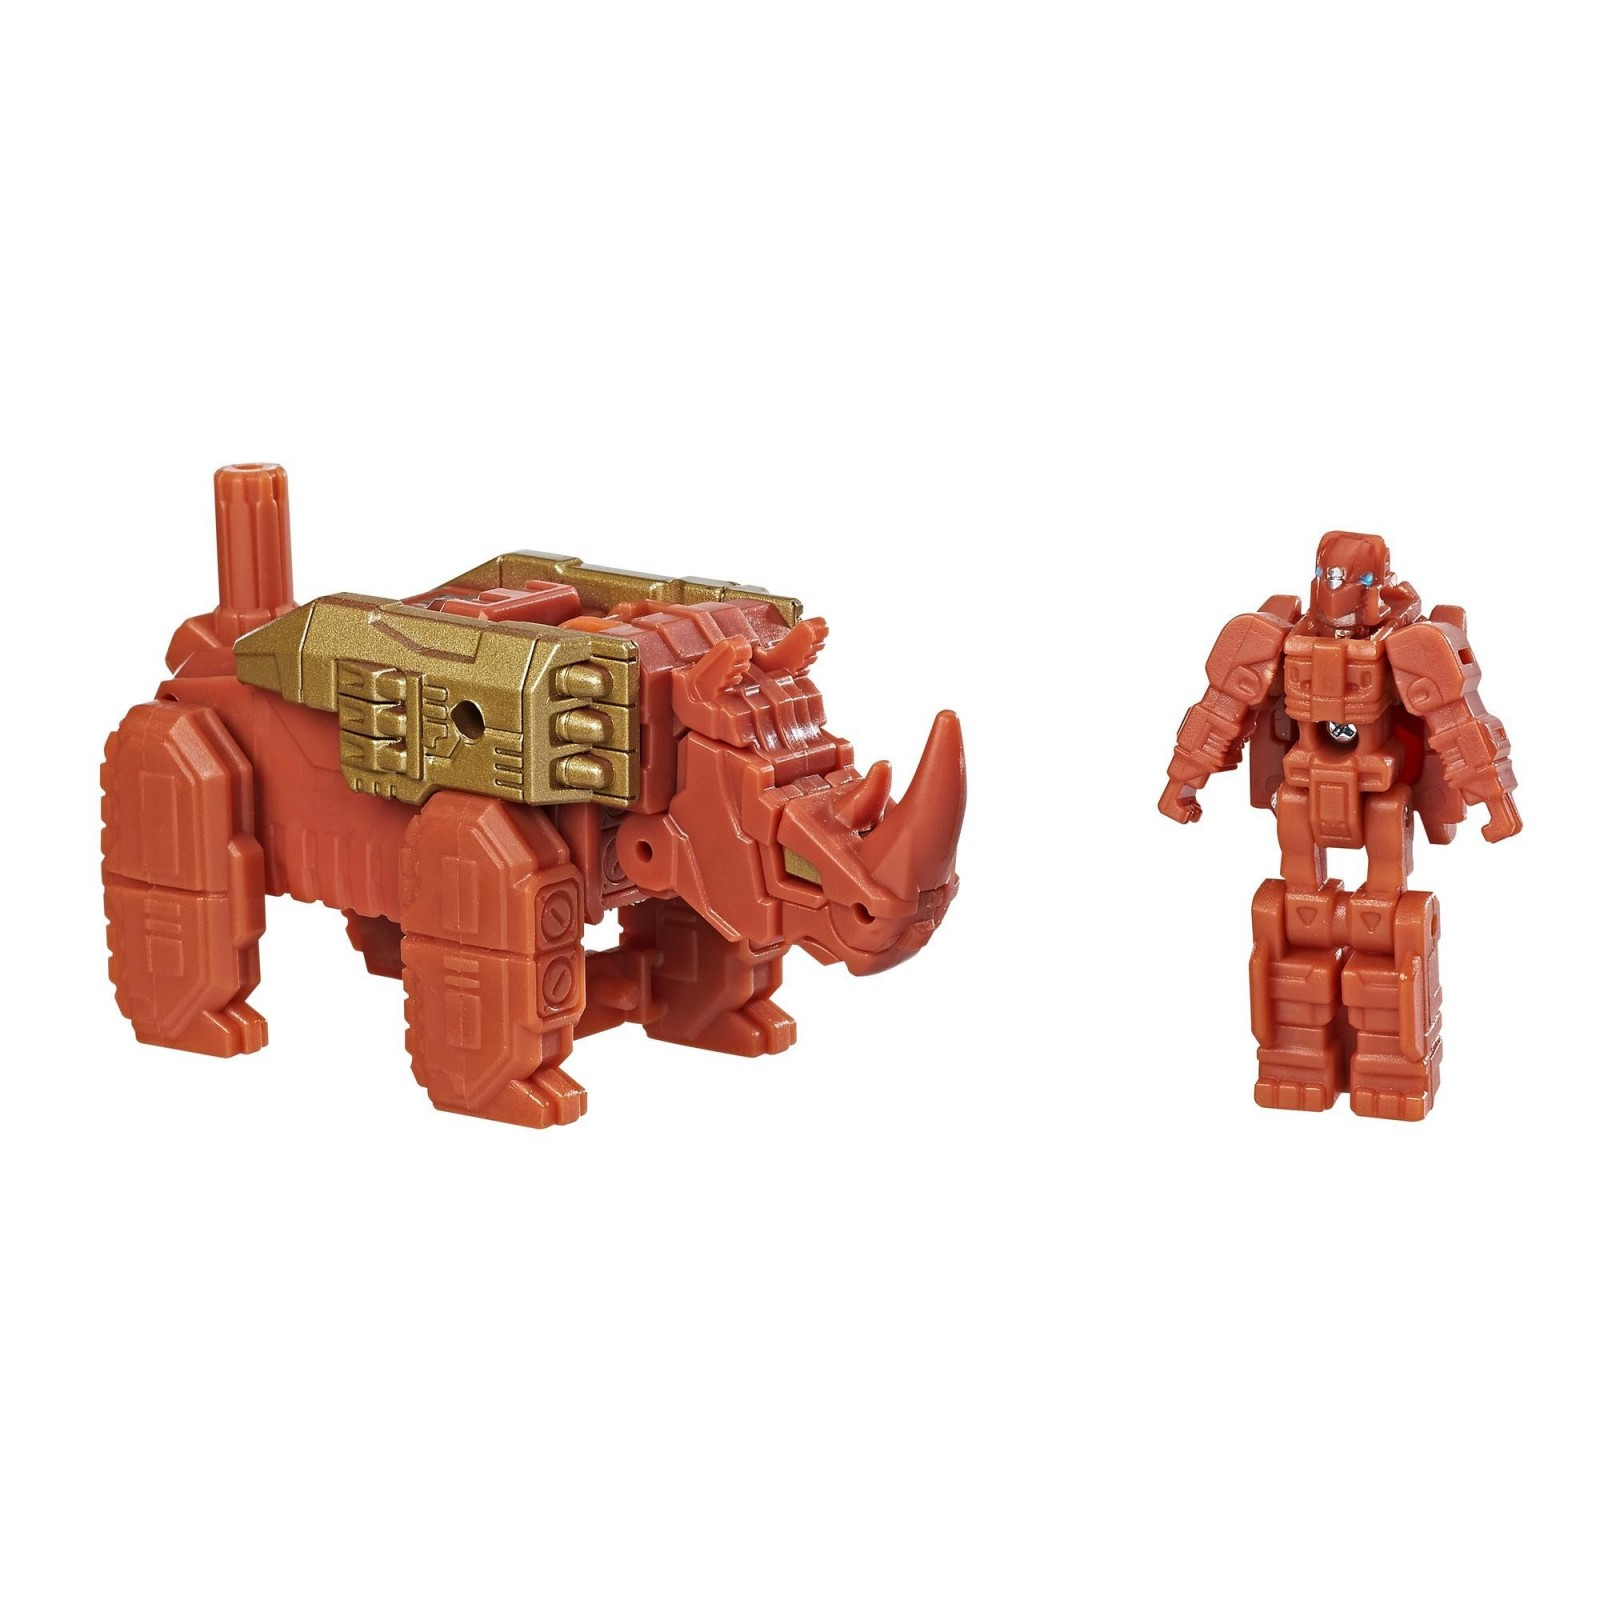 Transformers News: Transformers Titans Return Ramhorn In-Stock at Hasbro Toy Shop